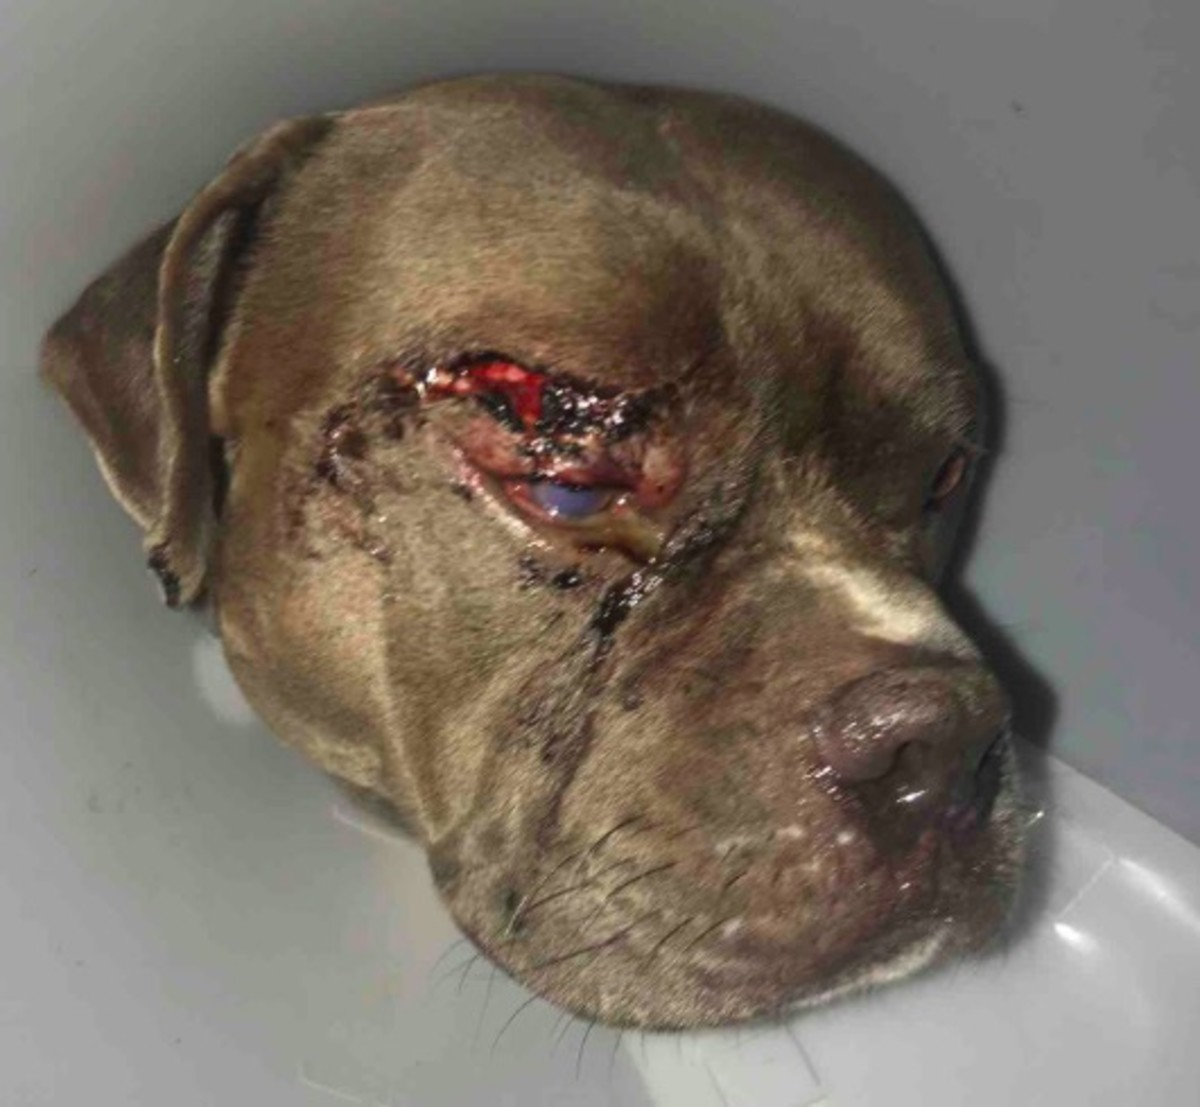 The injury inflicted on Conan, who suffered a shattered eye socket.